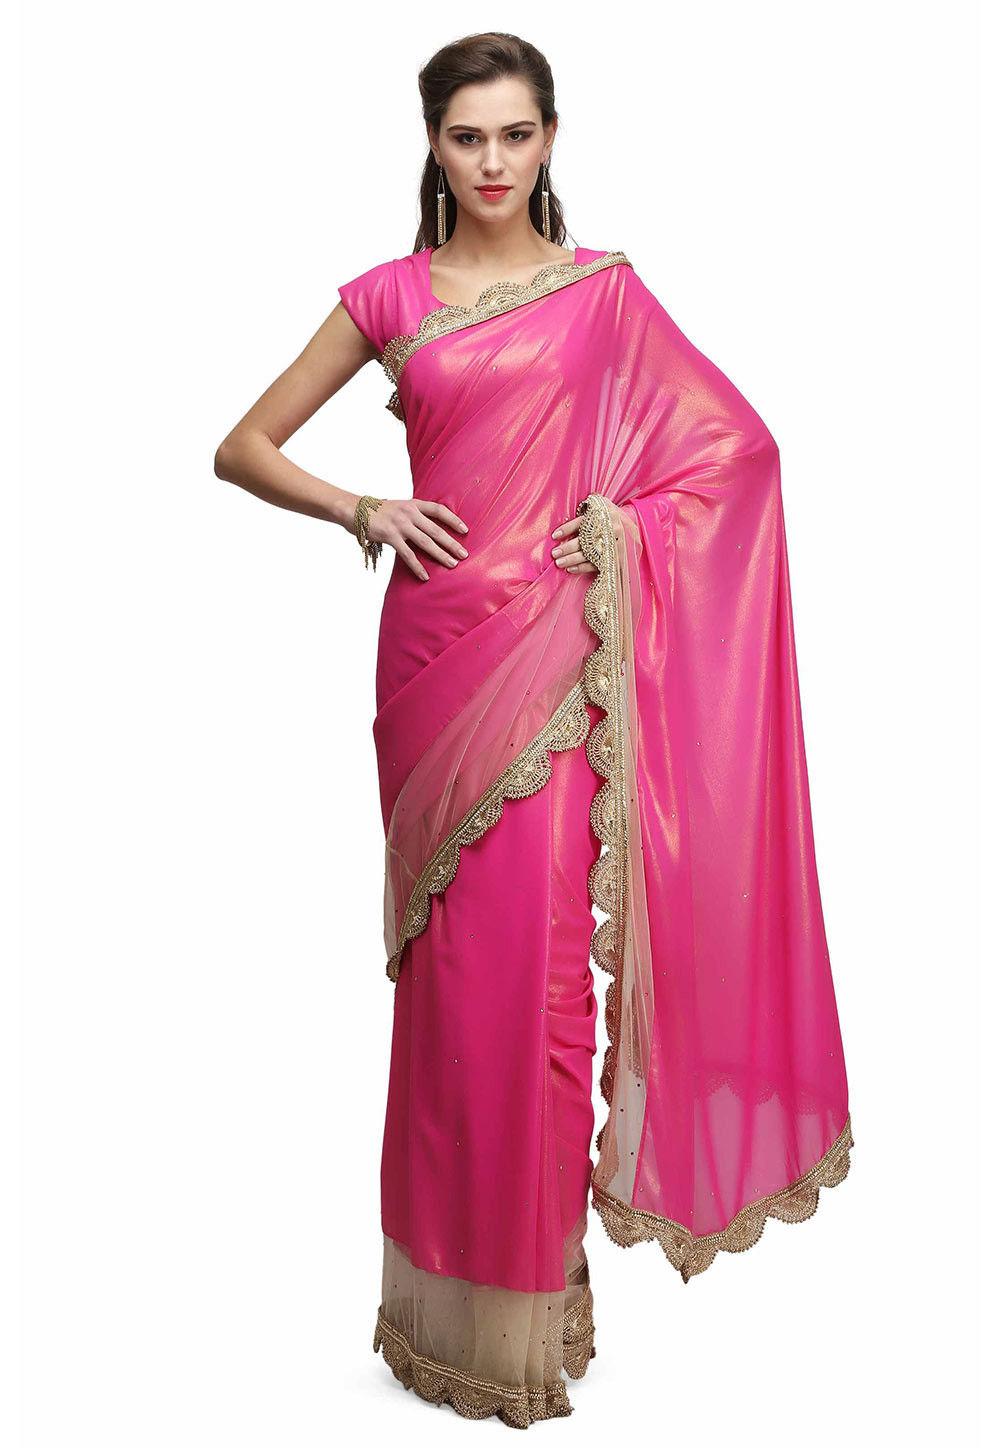 Contrast Border Georgette Shimmer Saree in Fuchsia